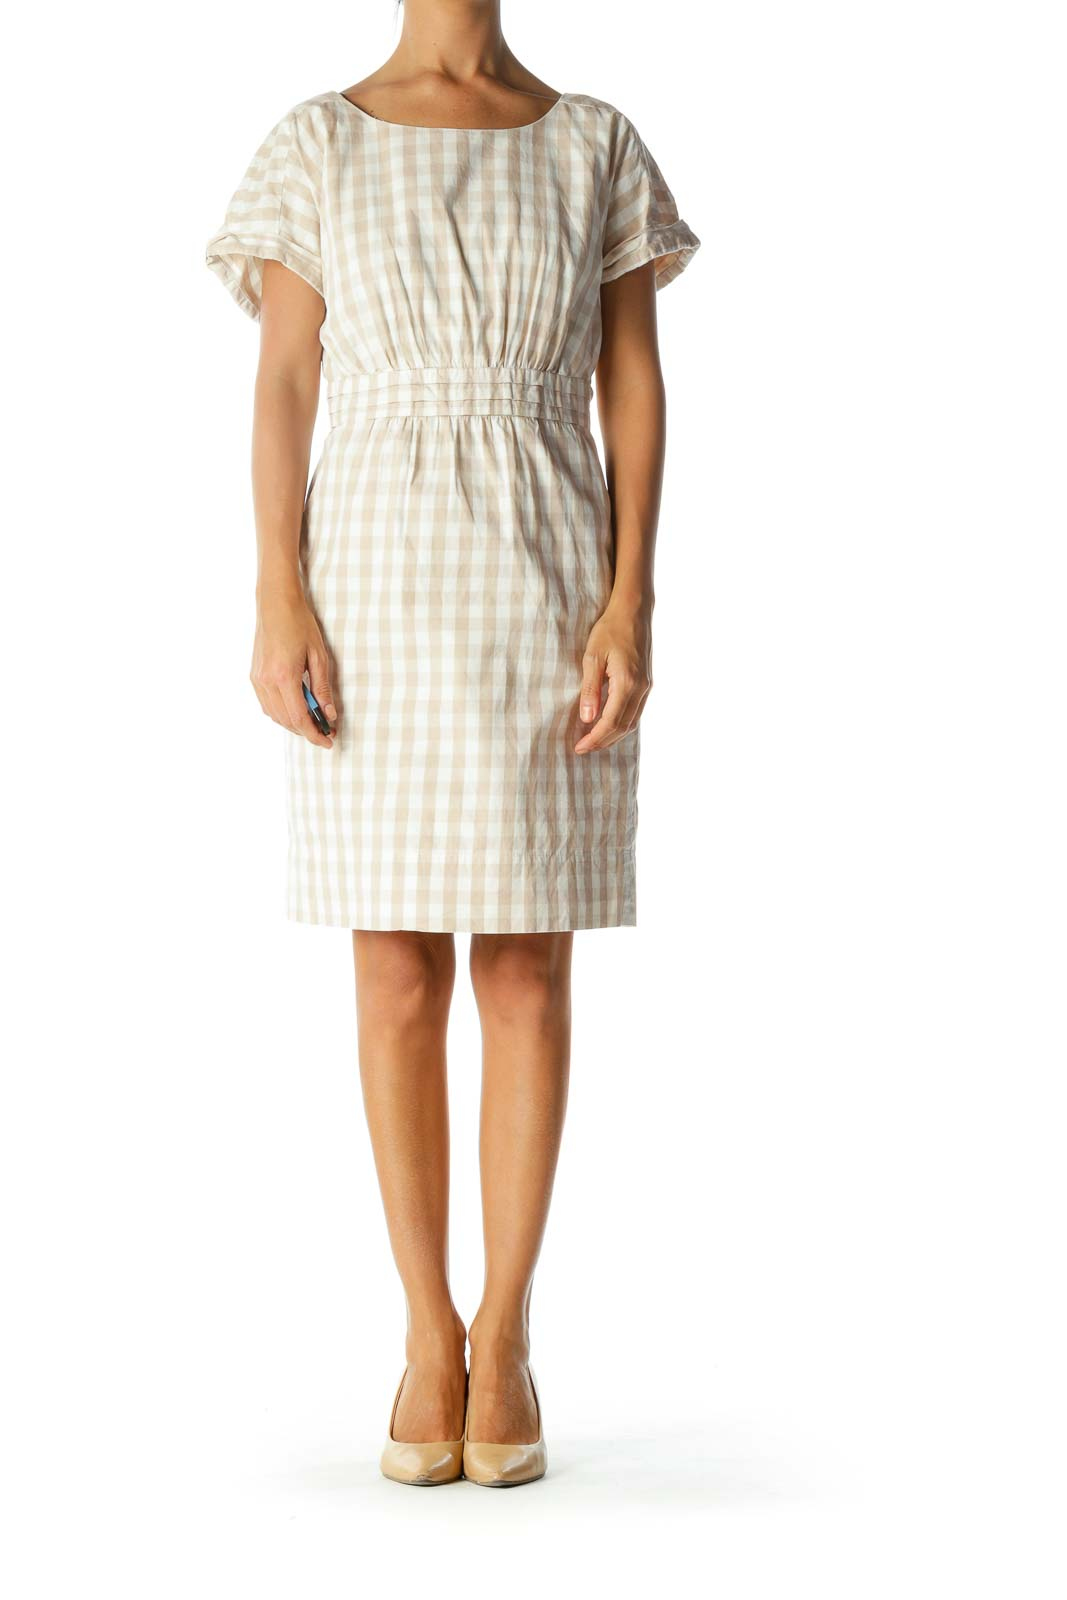 Beige Cream Gingham Short Sleeve Pleated Pocketed Dress